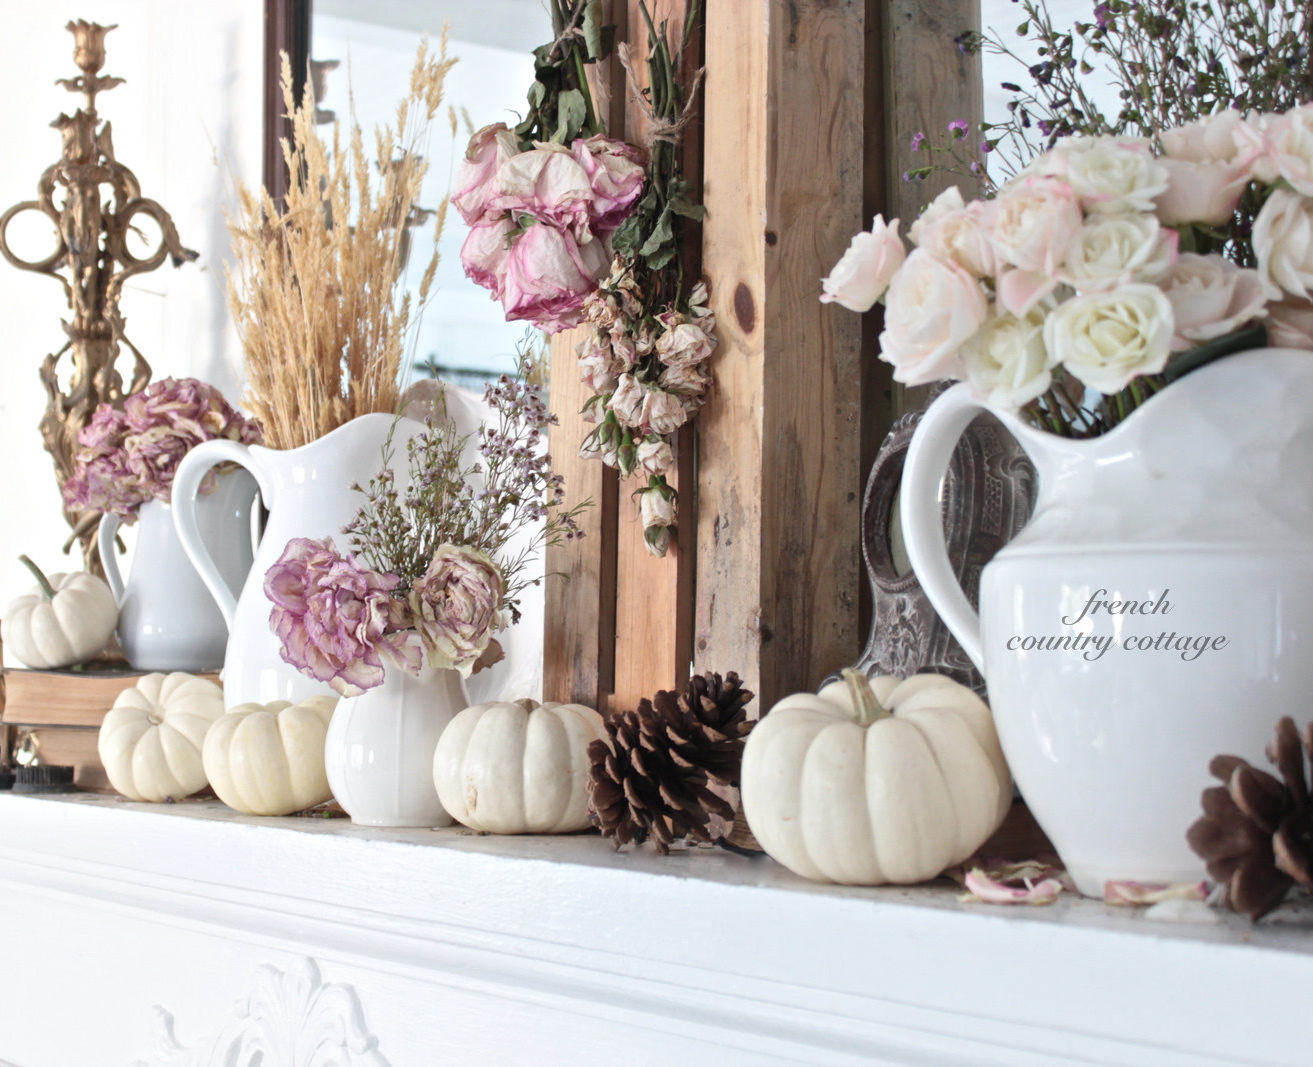 Autumn At French Country Cottage